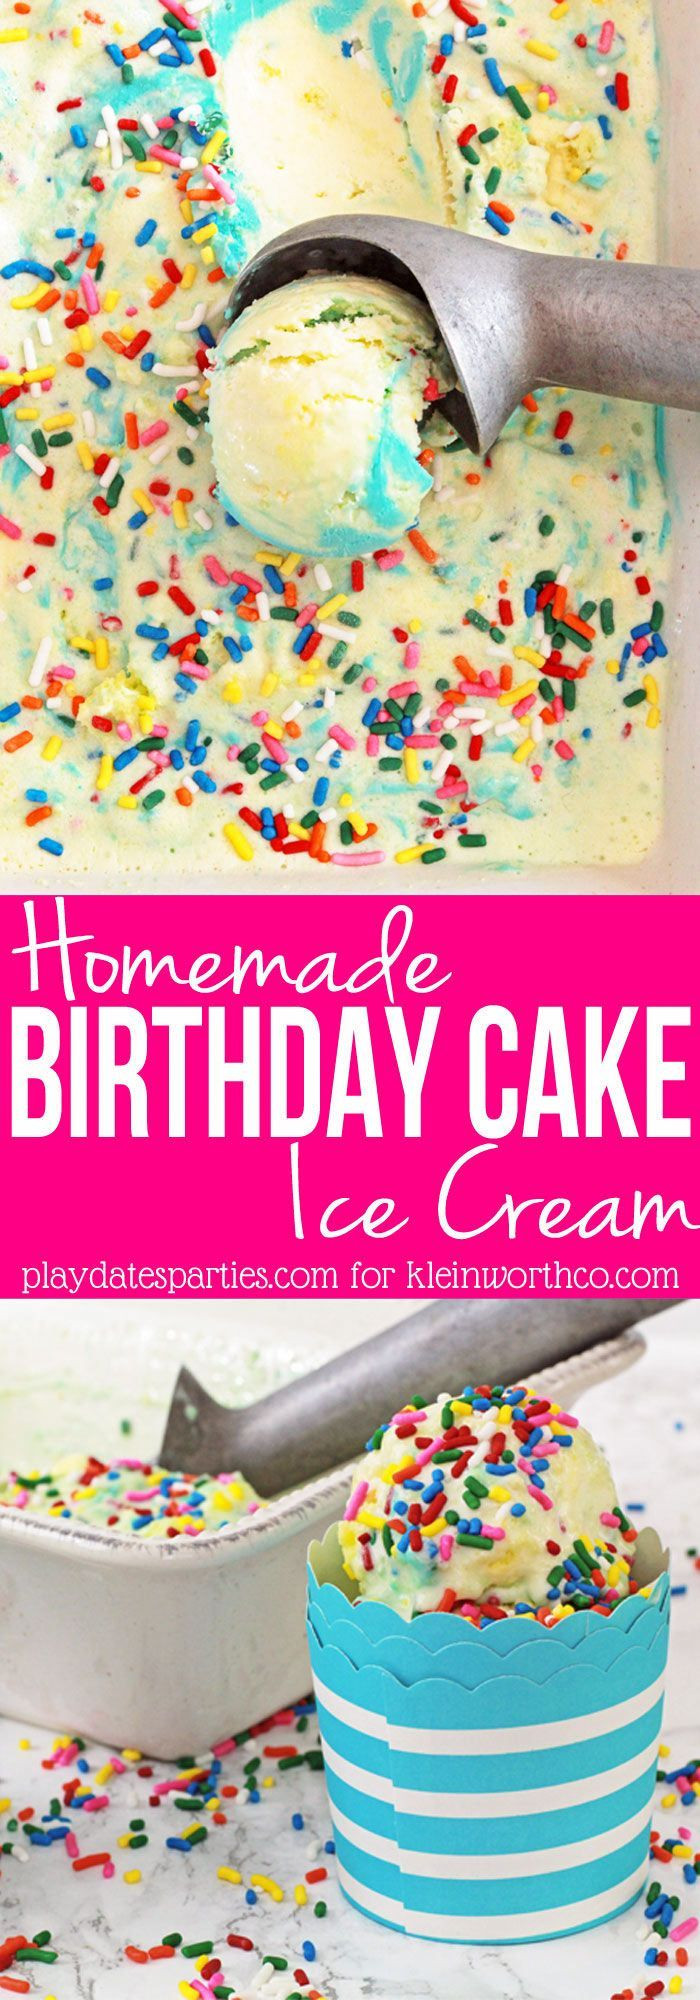 Best ideas about Birthday Cake Flavor . Save or Pin Best 25 Birthday cake flavors ideas on Pinterest Now.